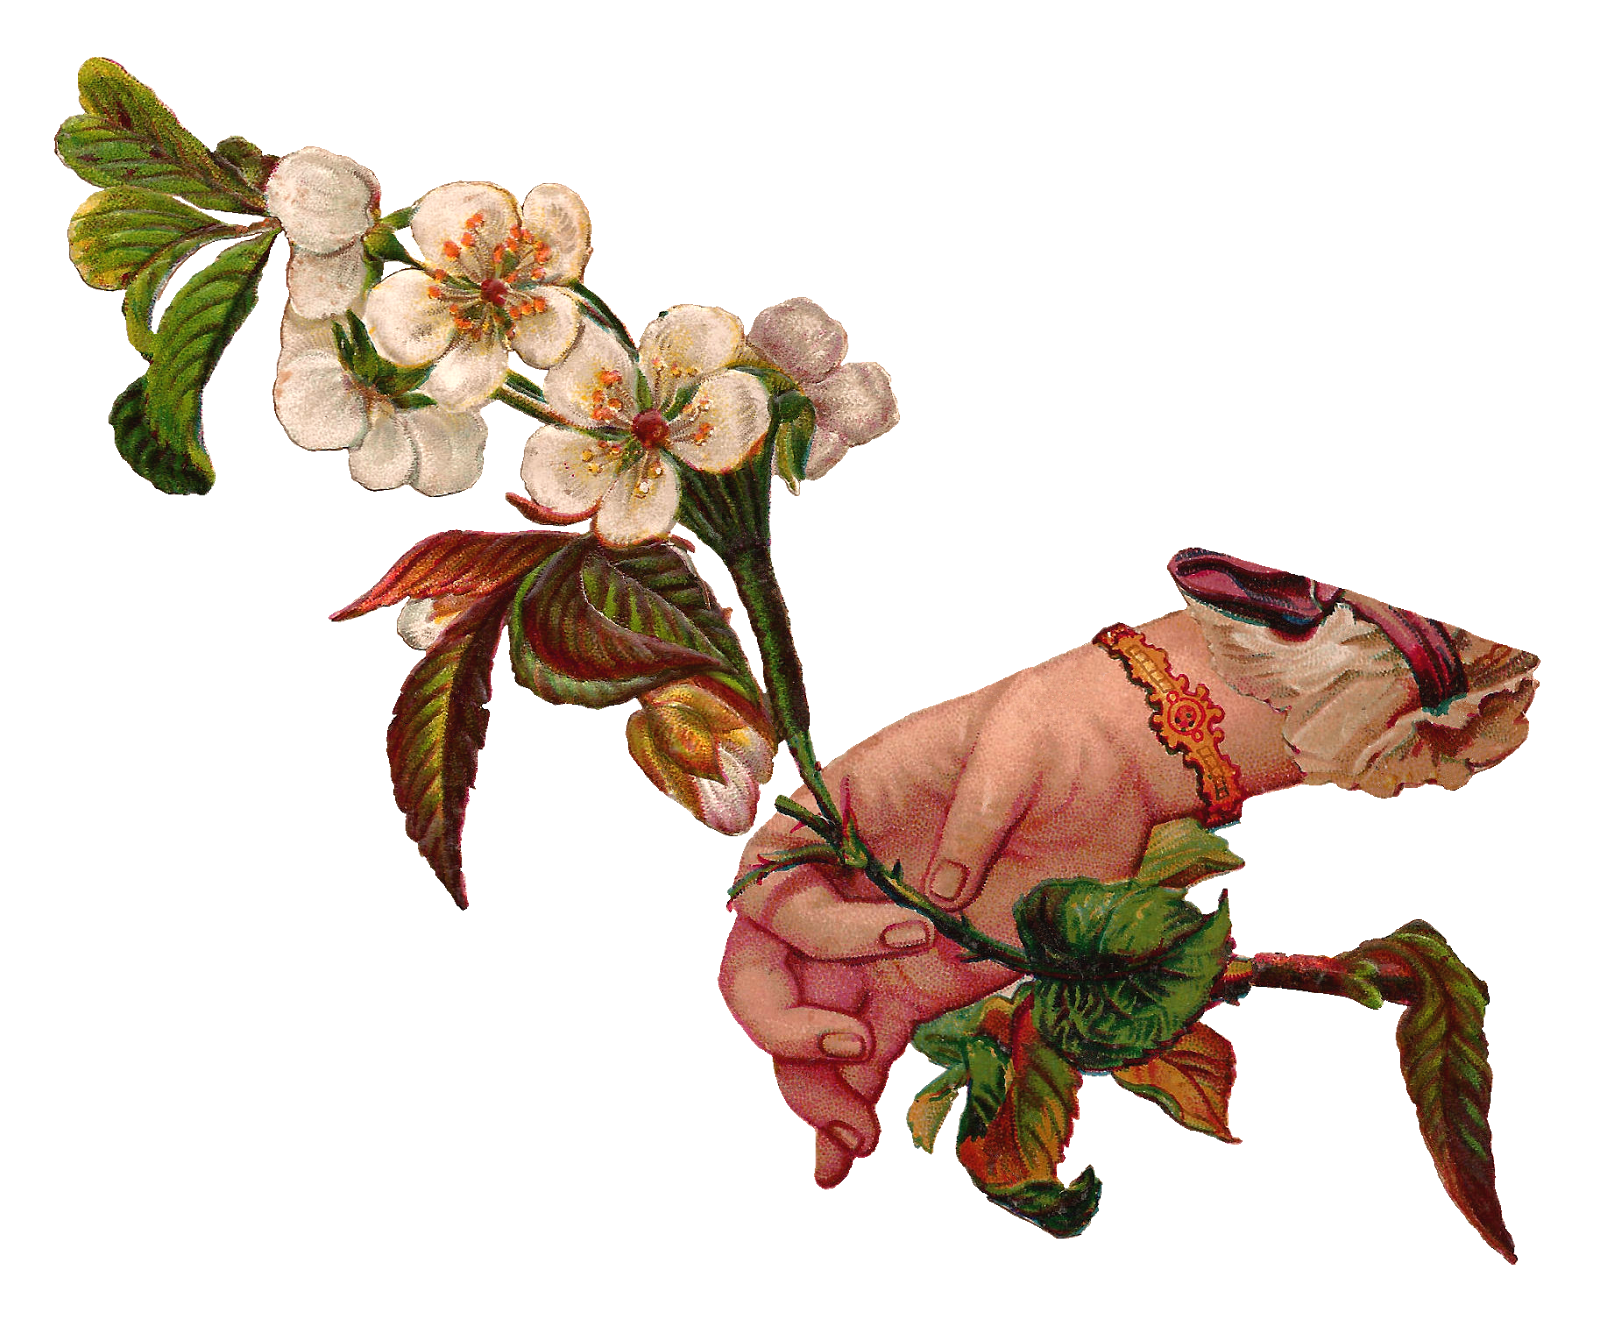 Dogwood flower clipart clipart royalty free Antique Images: Digital Illustration Flower and Hand Dogwood Branch ... clipart royalty free